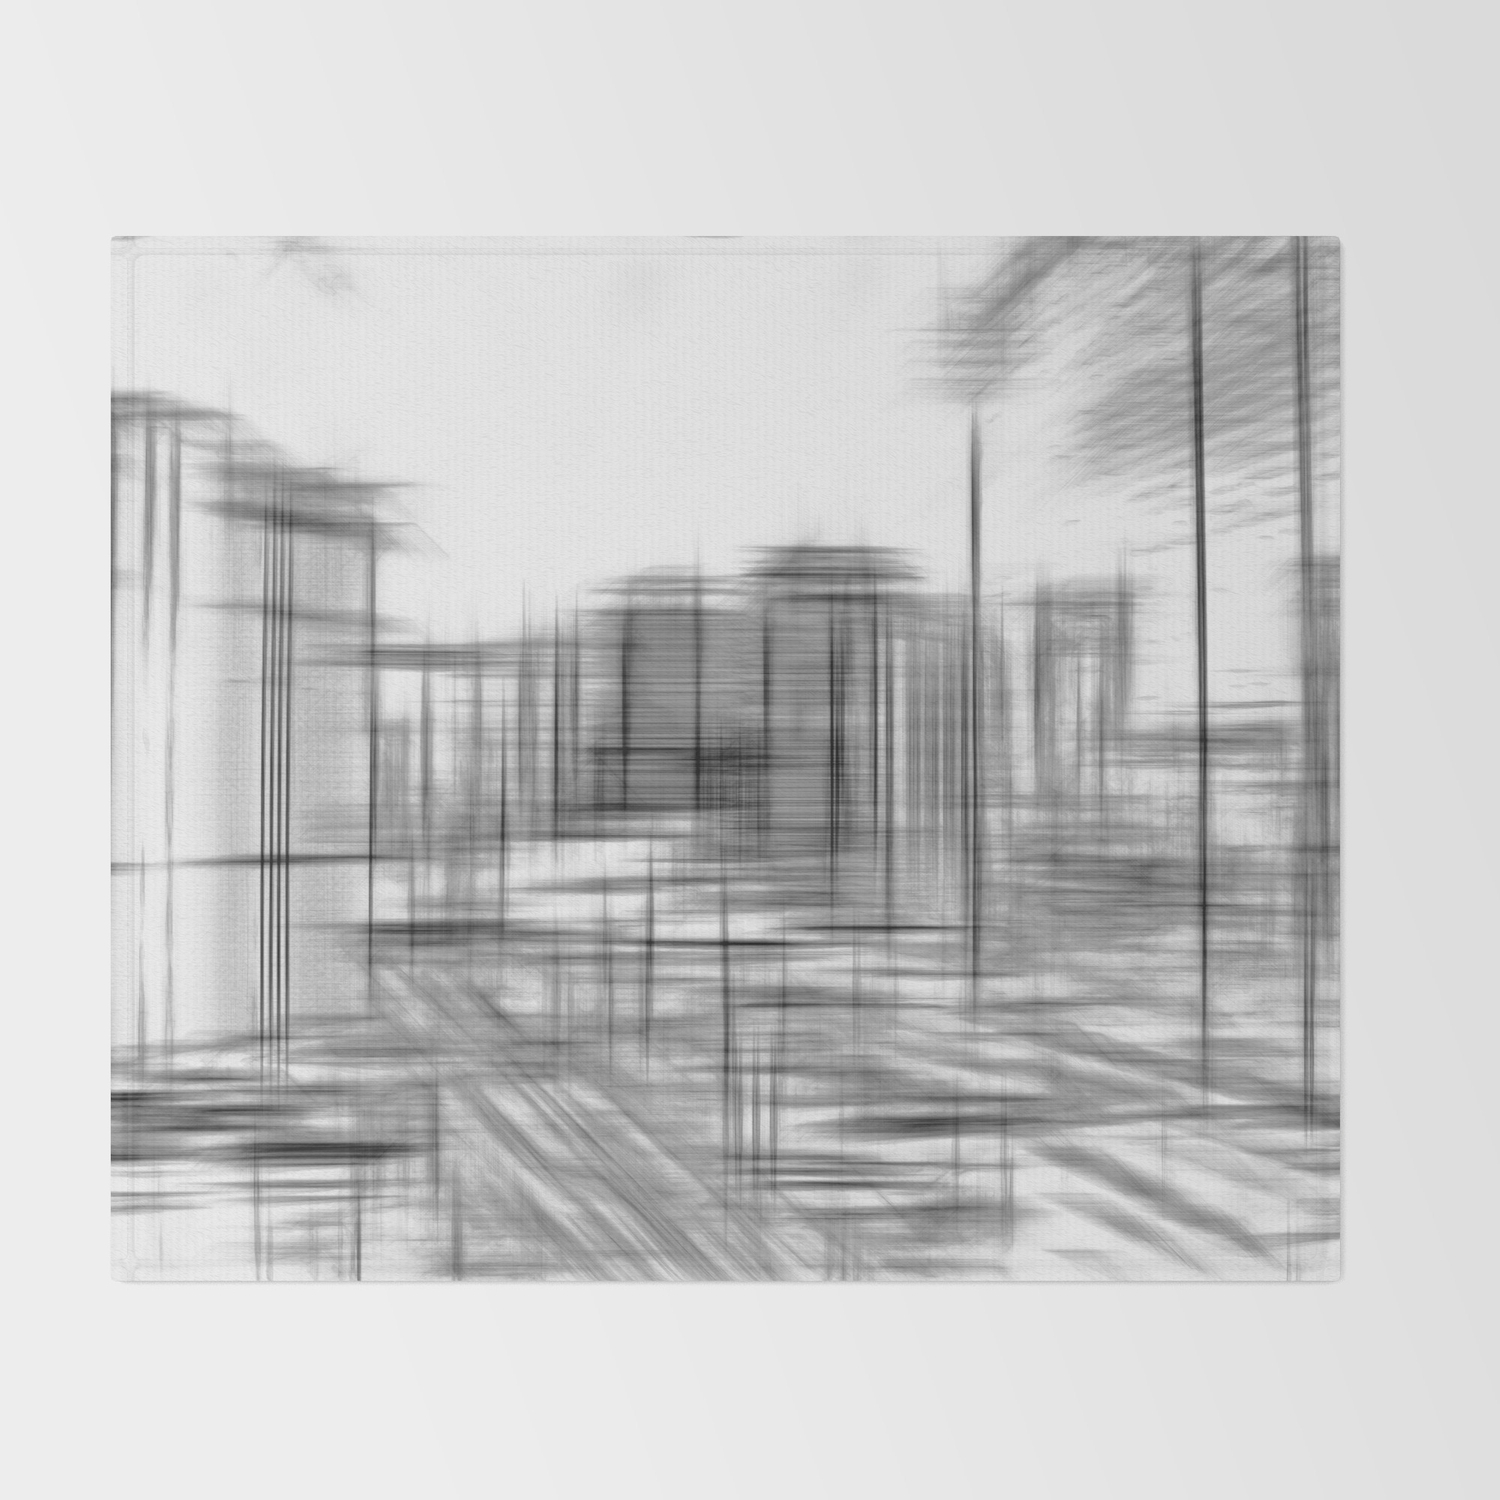 Pencil drawing buildings in the city in black and white throw blanket